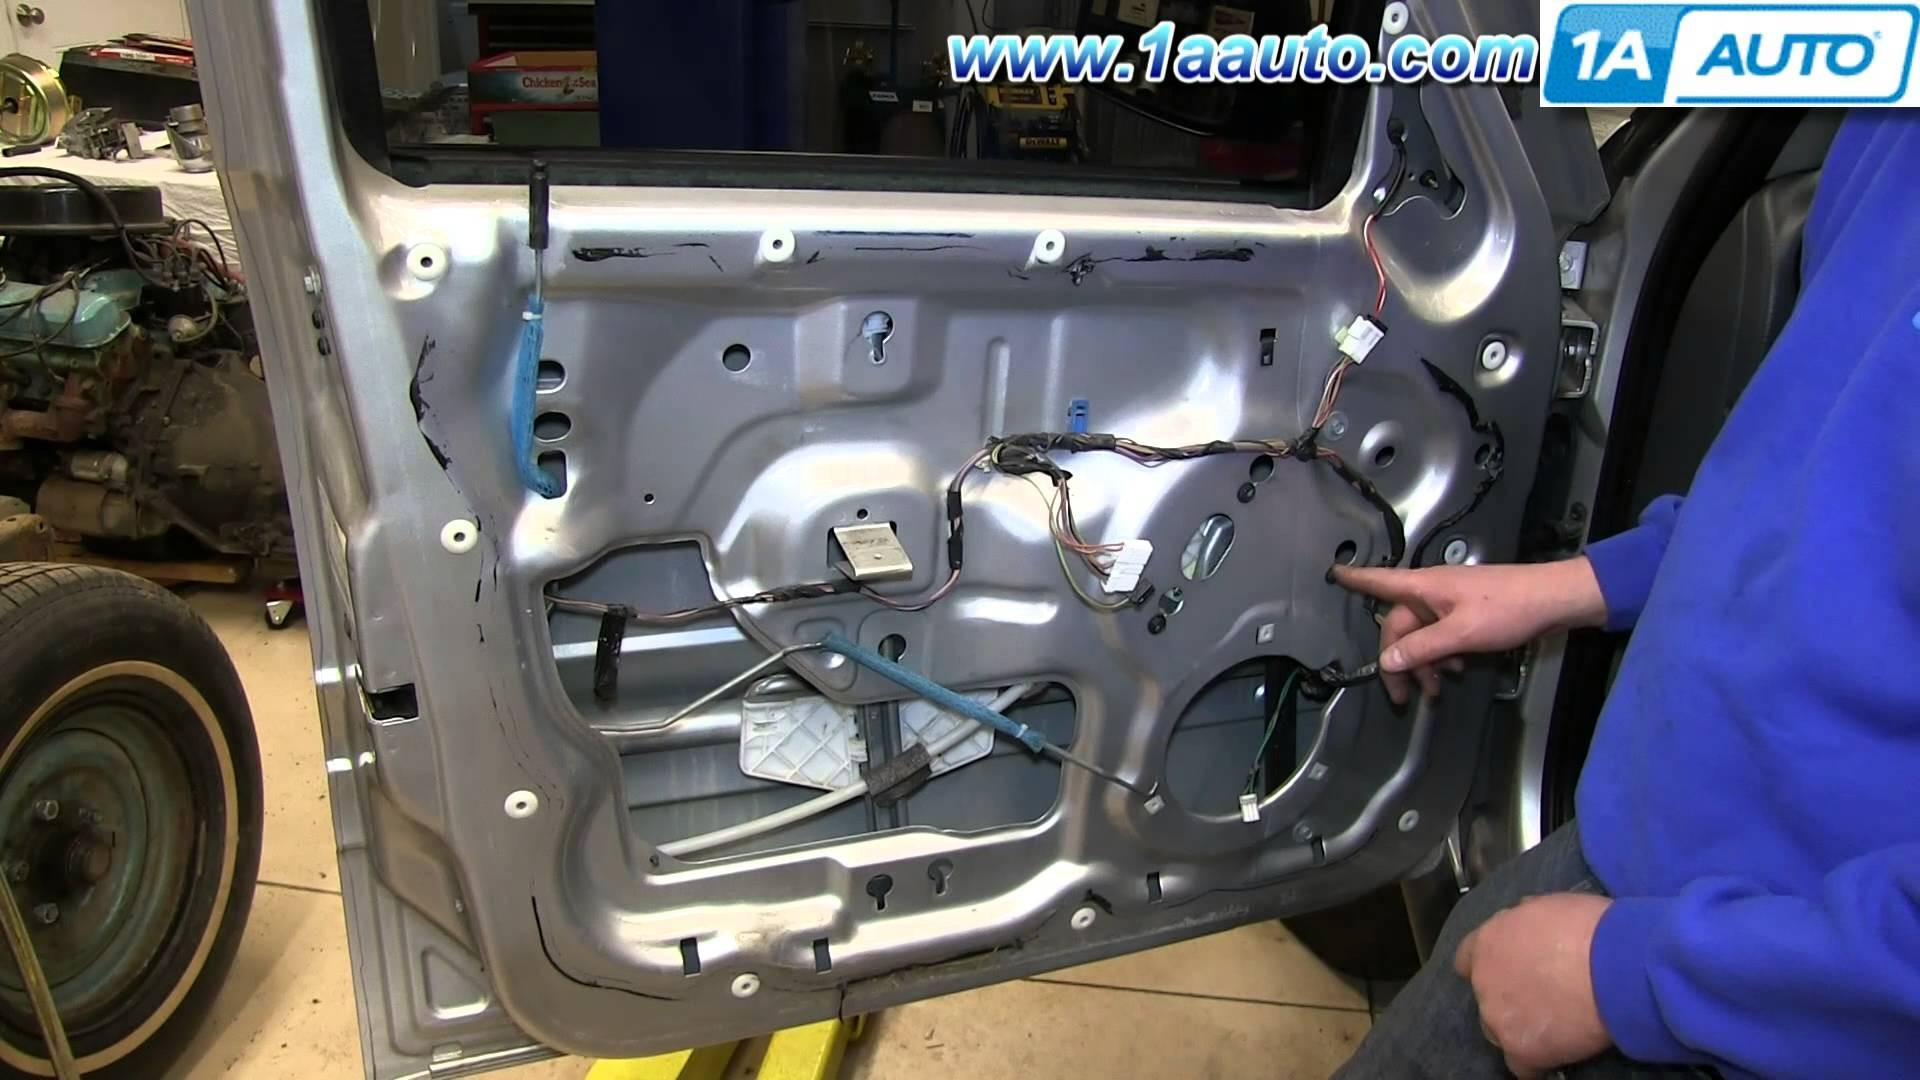 2011 Jeep Liberty Engine Diagram How to Install Replace Front Power Window Regulator 2002 07 Jeep Of 2011 Jeep Liberty Engine Diagram